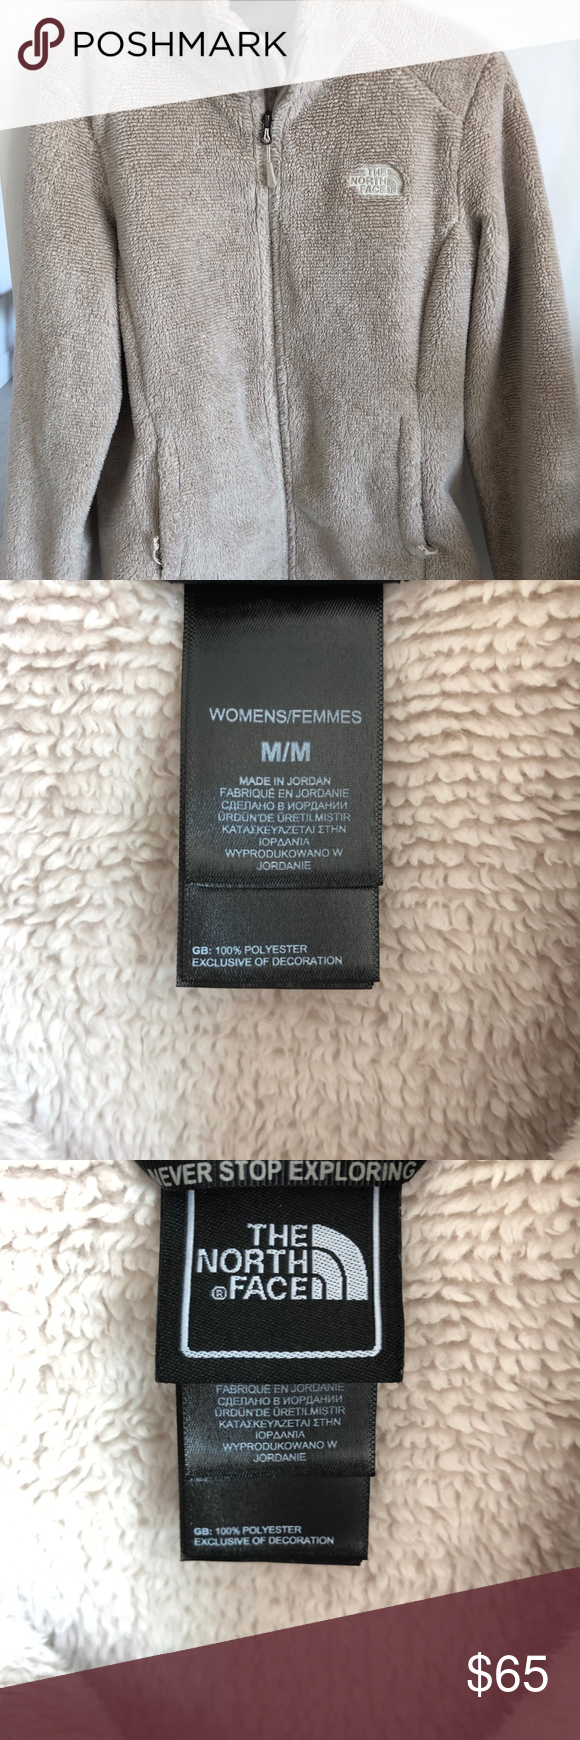 The North Face Fleece Jacket Size M Worn Around 6 8x Tag Inside With Washing Instructions Taken Ou North Face Fleece Jacket North Face Fleece North Face Jacket [ 1740 x 580 Pixel ]